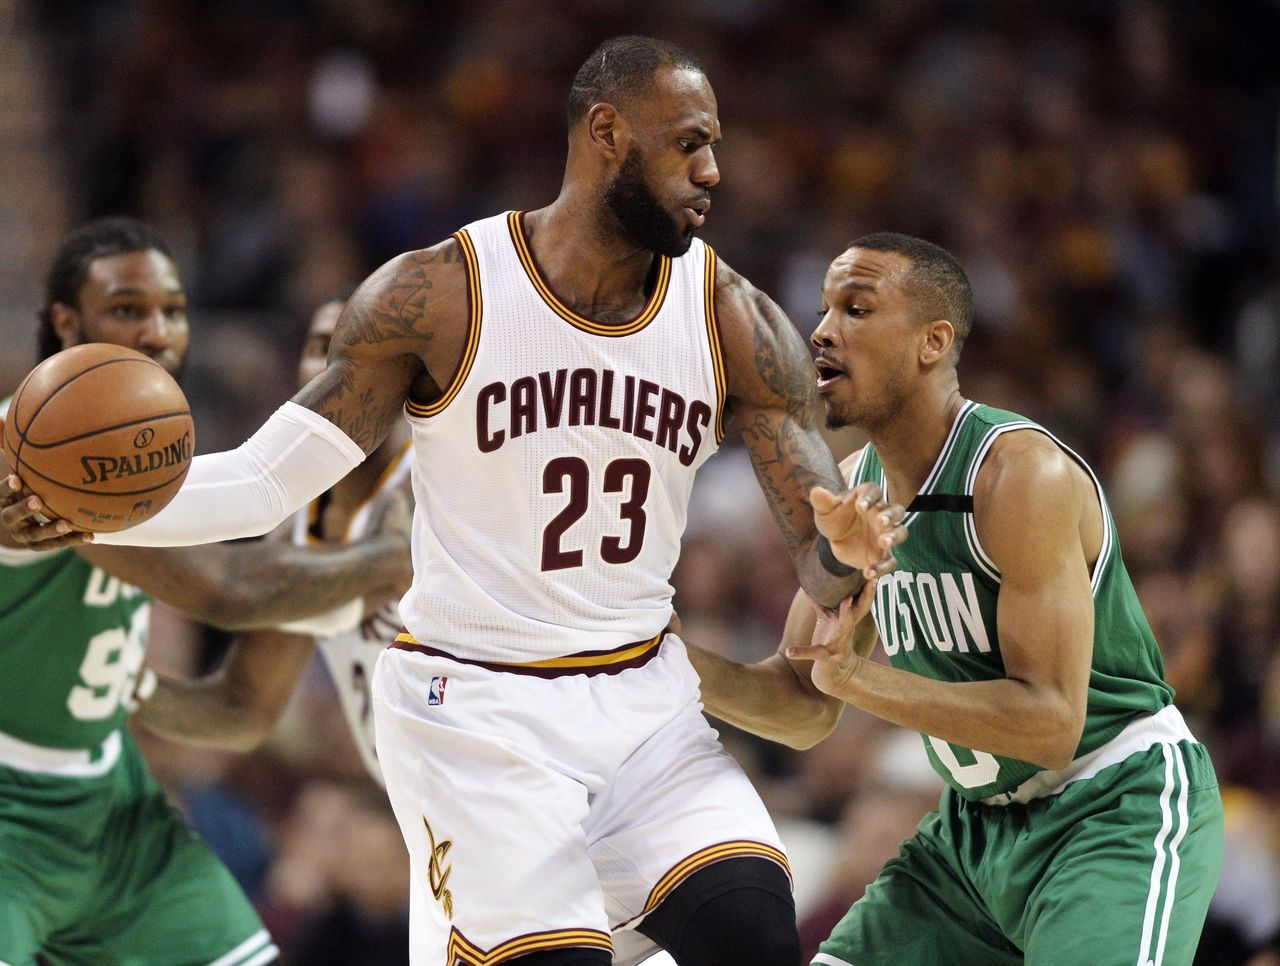 Cropped 2017 05 24t014440z 1435719536 nocid rtrmadp 3 nba playoffs boston celtics at cleveland cavaliers